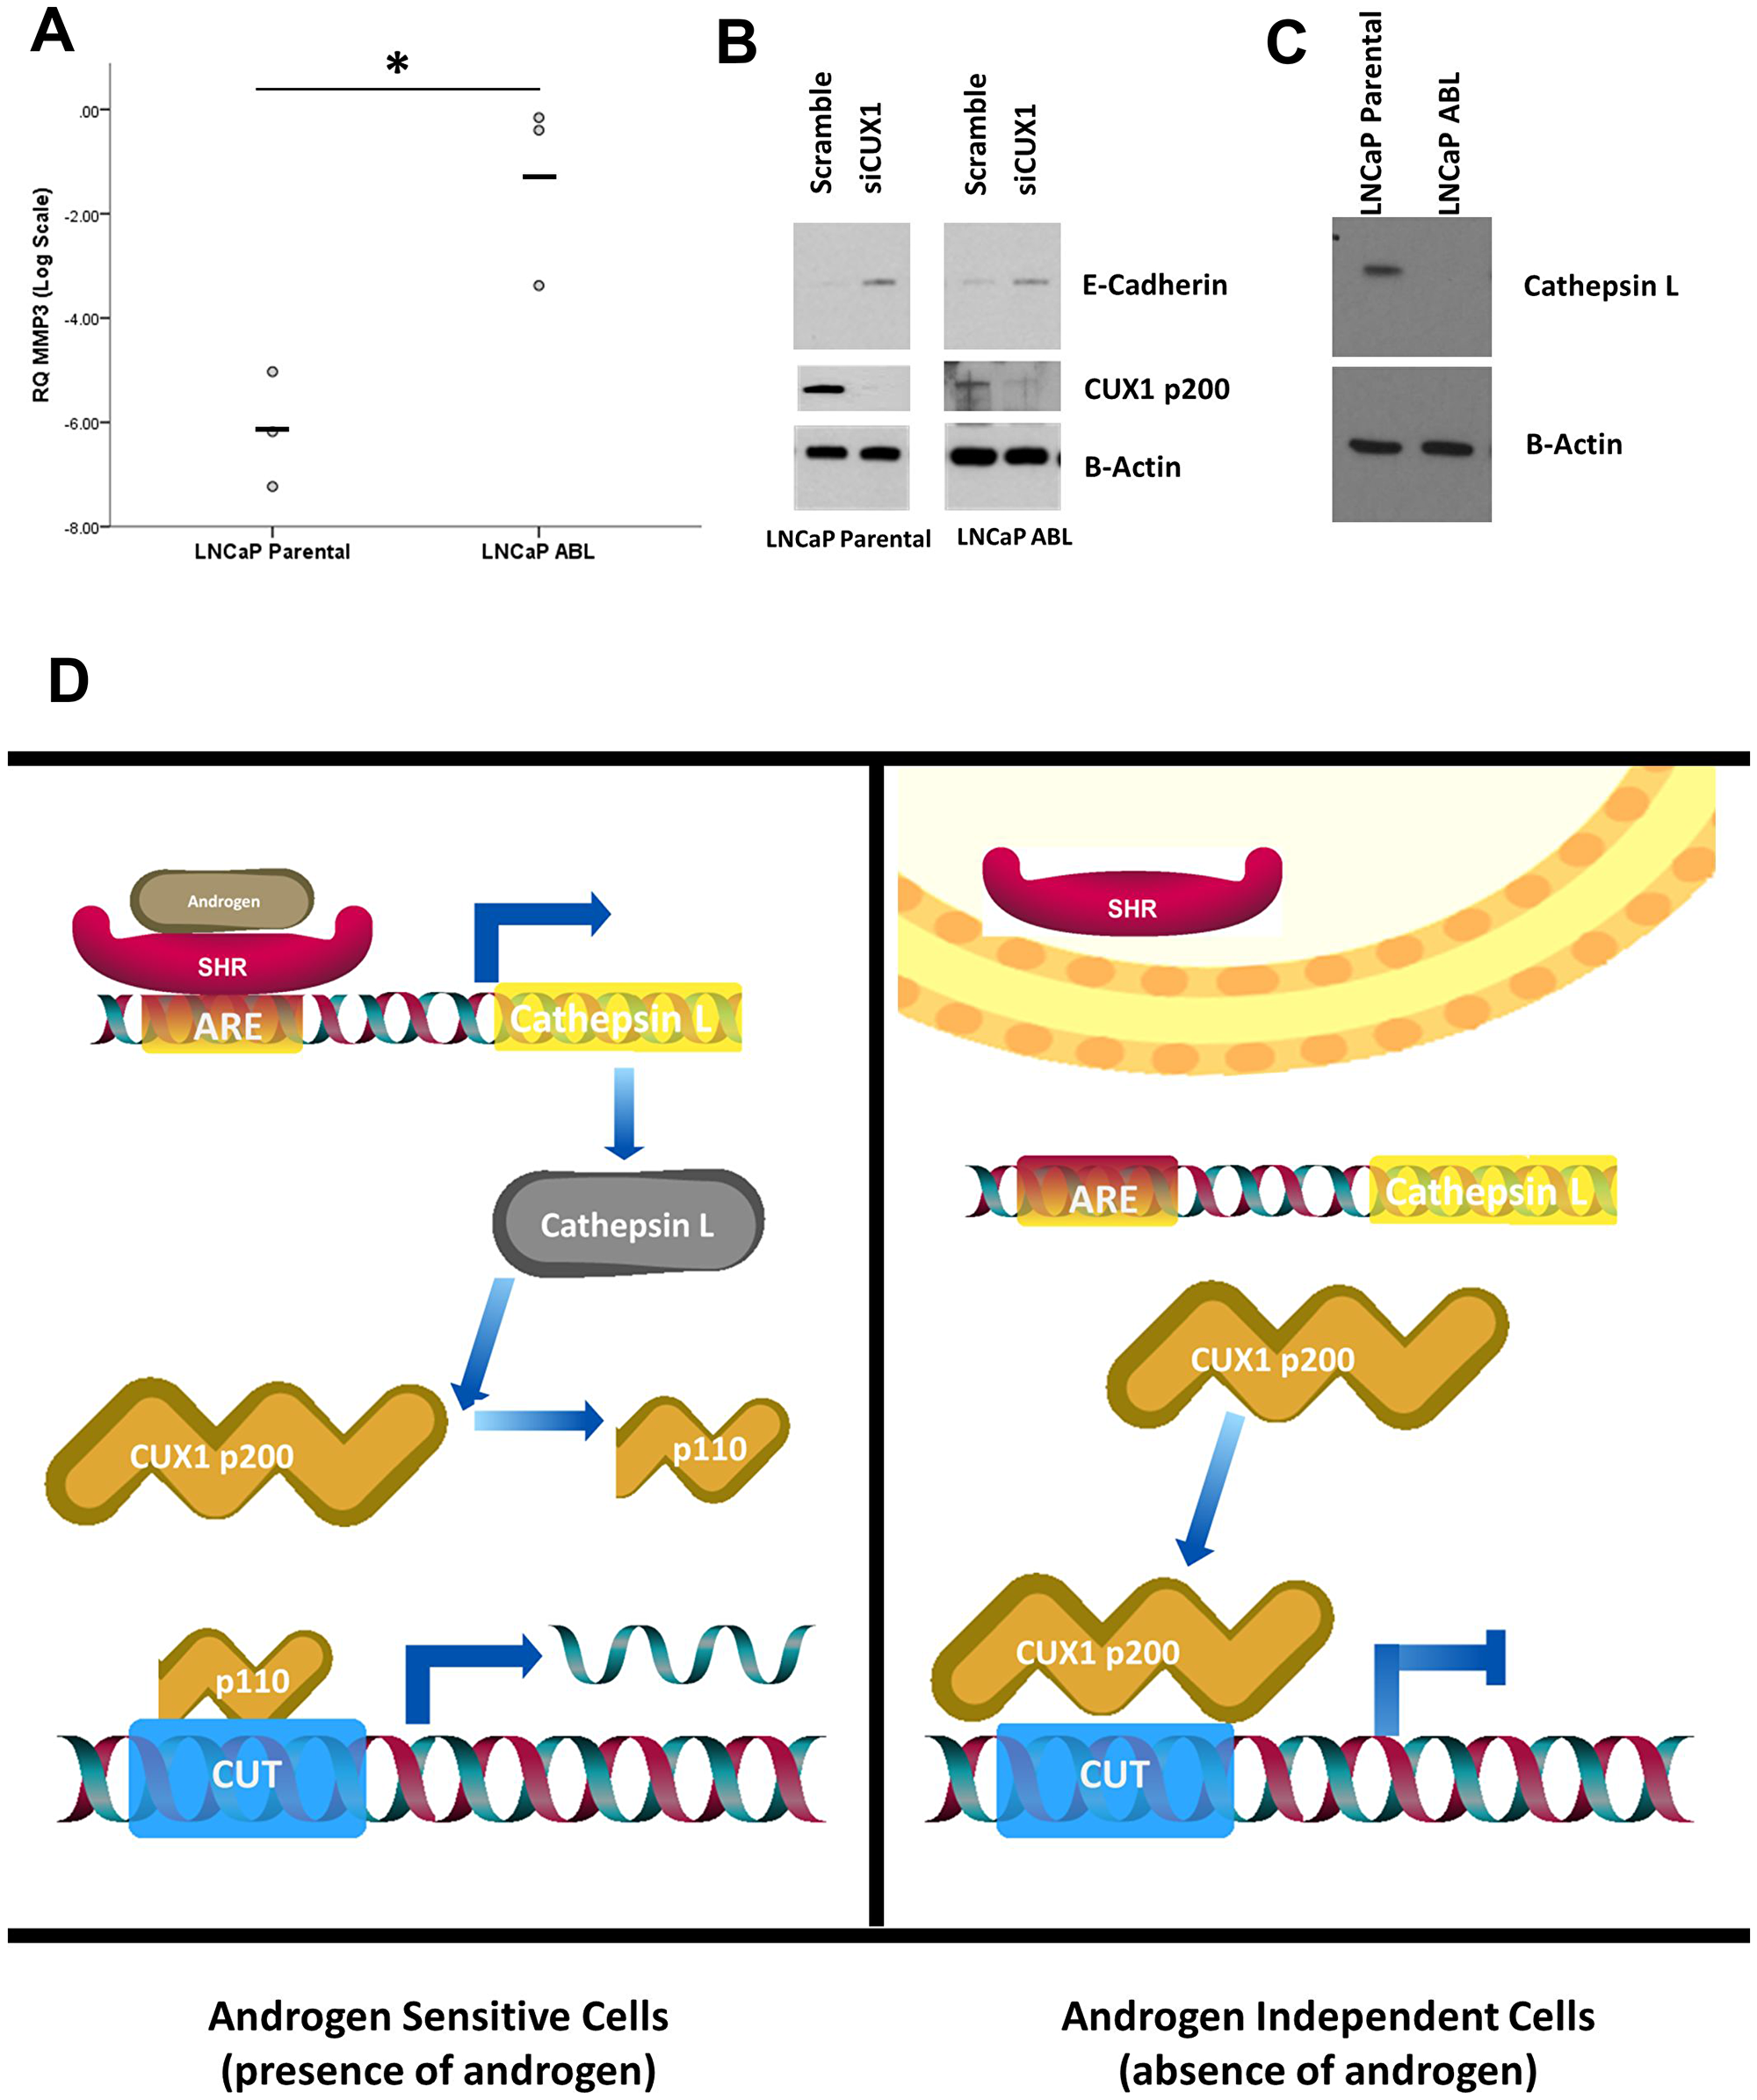 Phenotypic differences in response to CUX1 silencing are driven by androgen status.